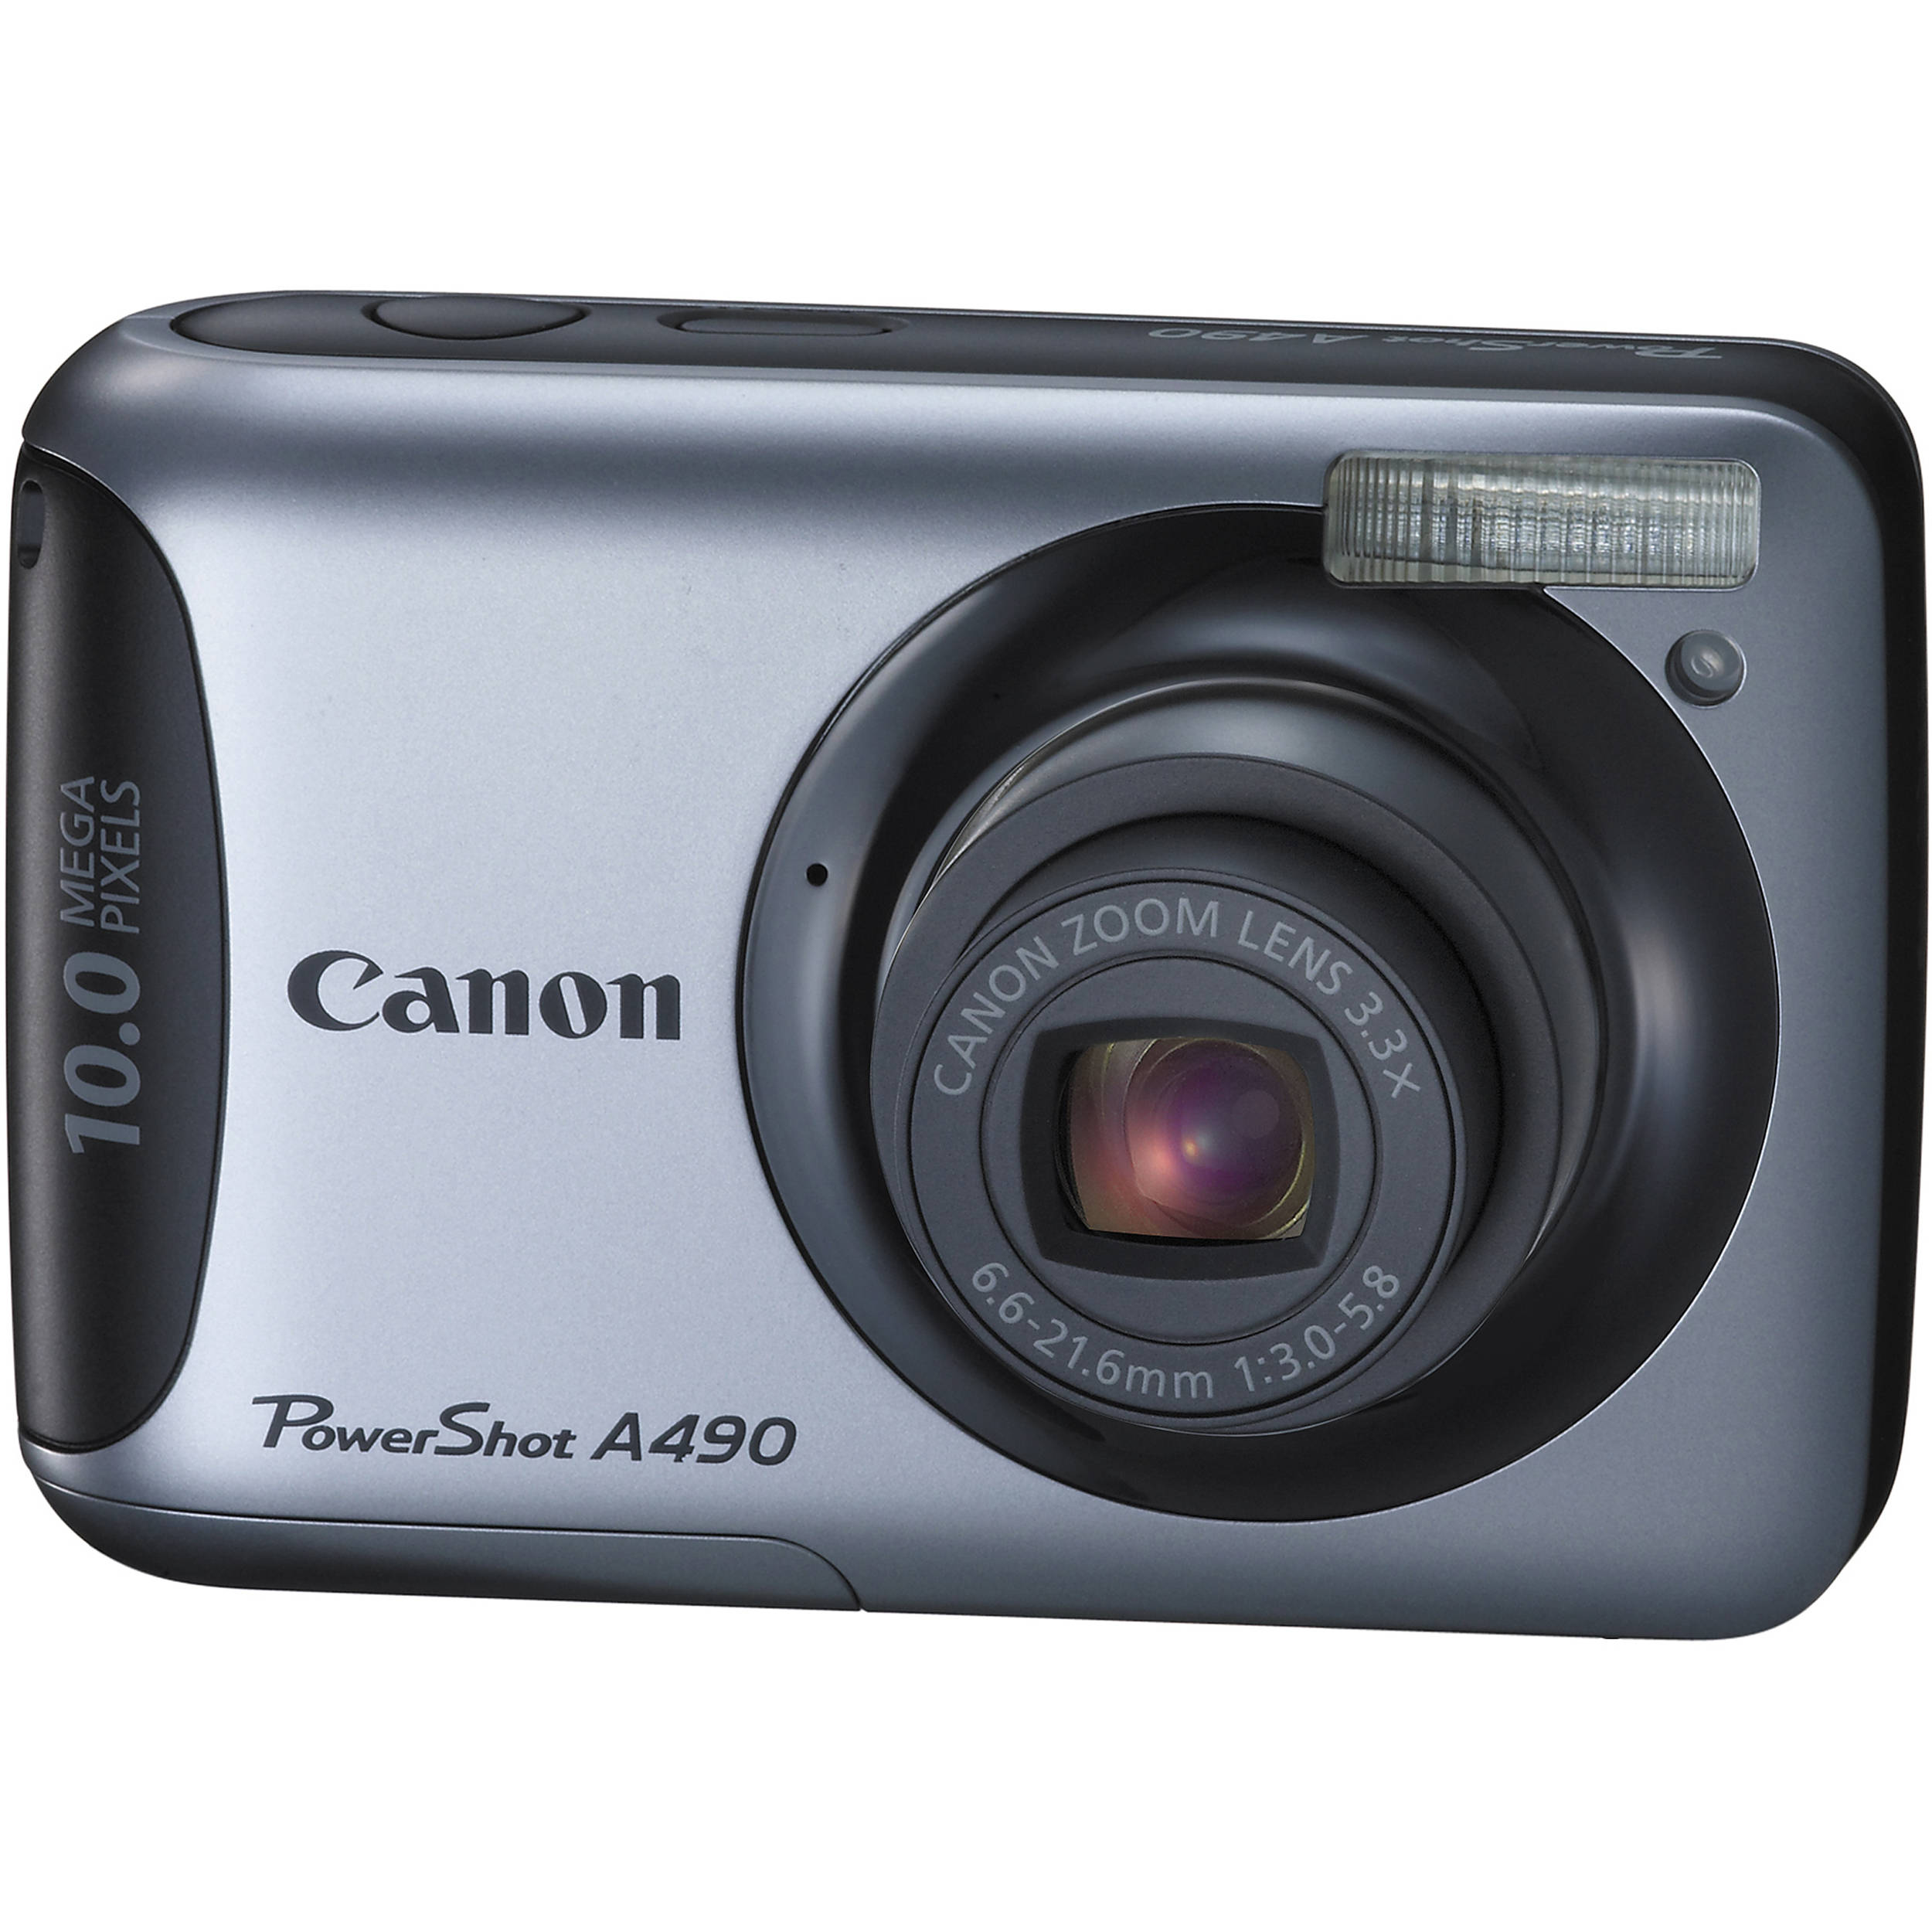 canon powershot a490 digital camera 4258b001 b h photo video rh bhphotovideo com canon a480 manual pdf canon powershot a490 user manual